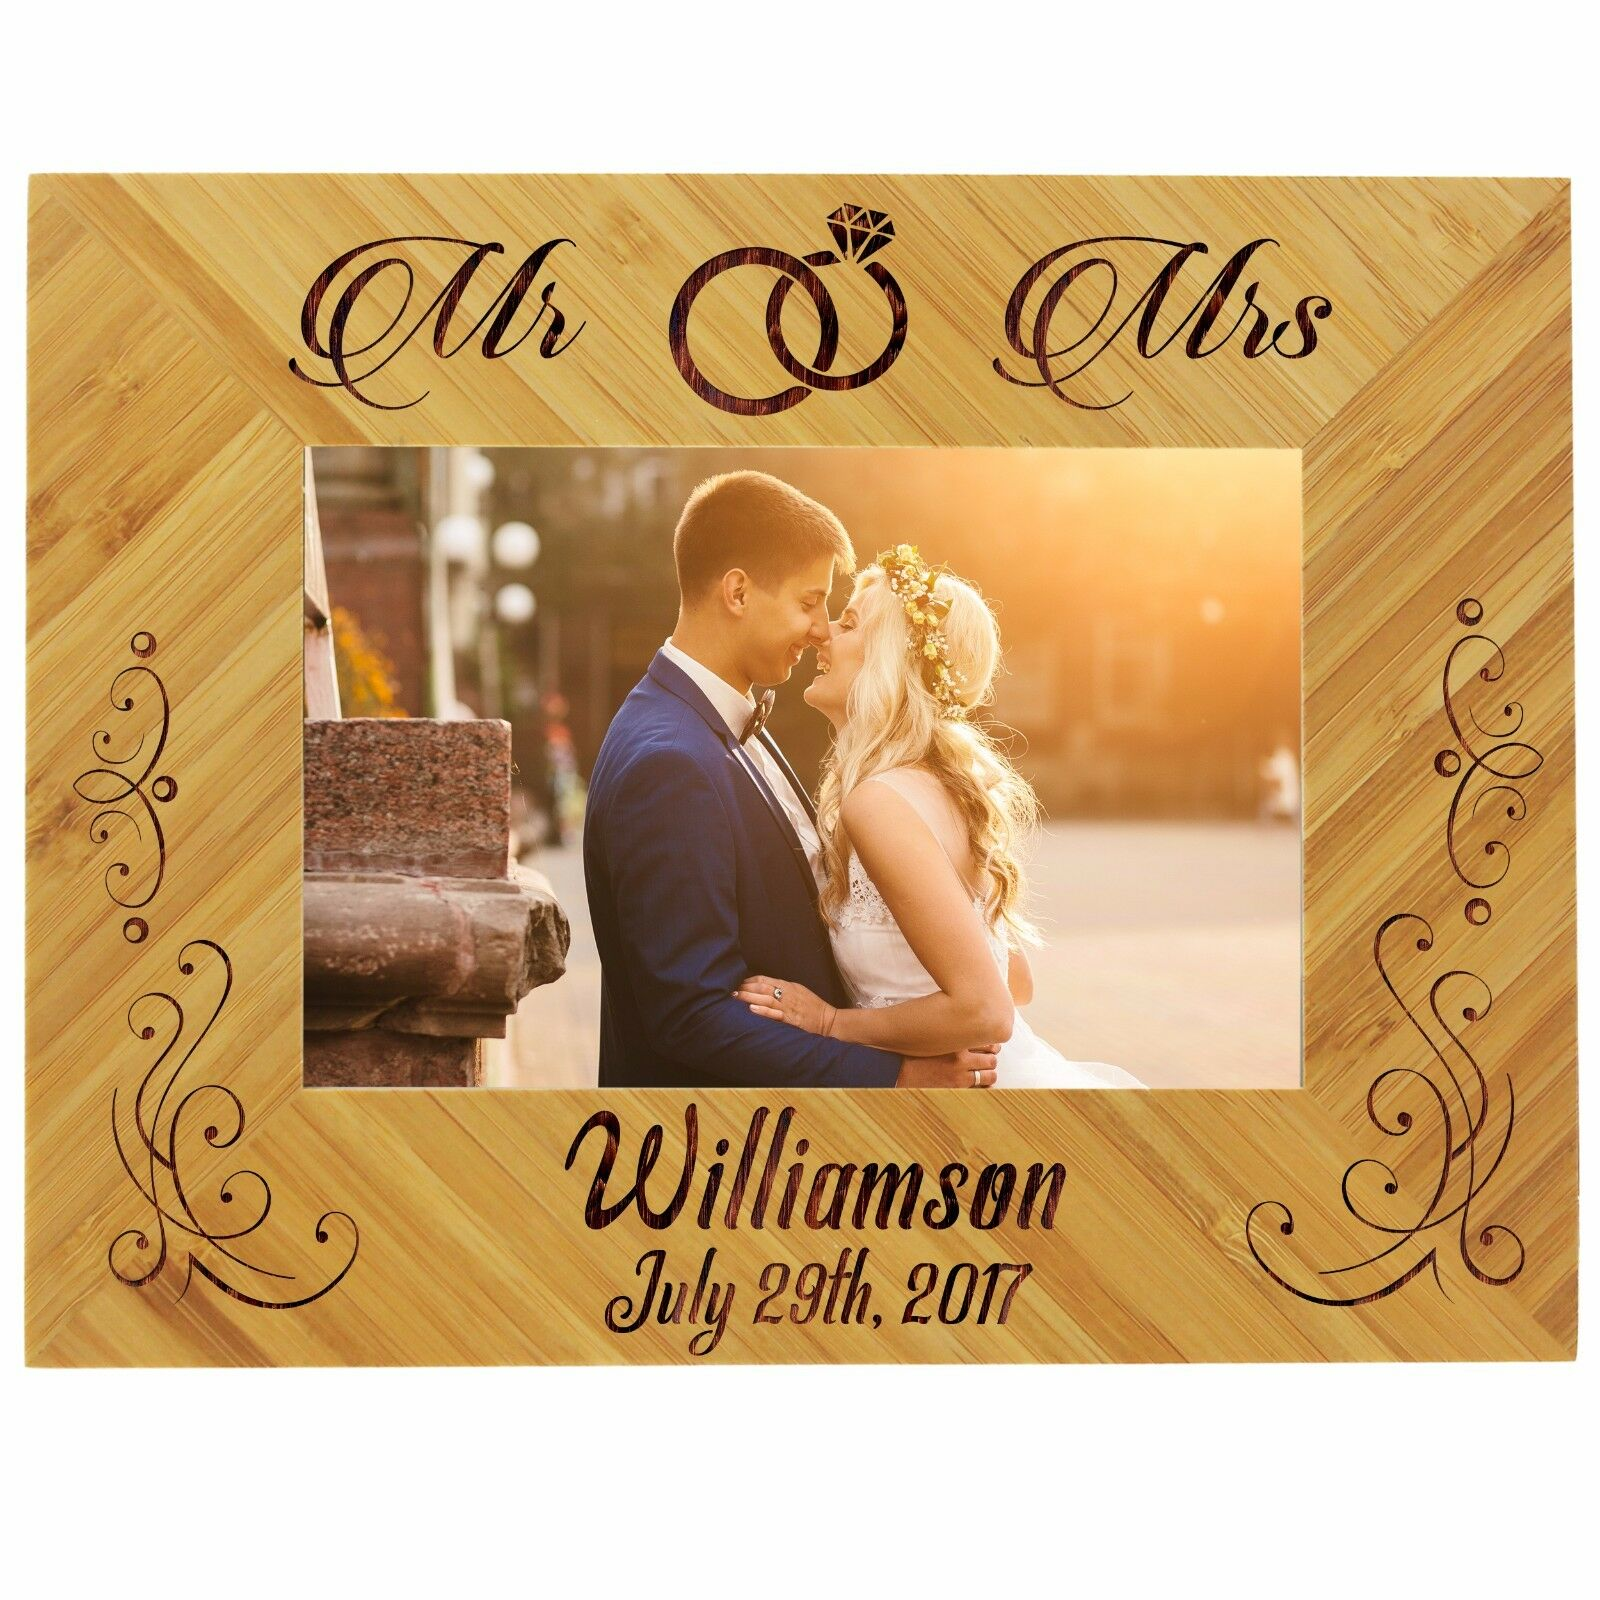 Gifts For Newly Wed Couple: Custom Engraved 4x6 Picture Wedding Frame For Newlywed